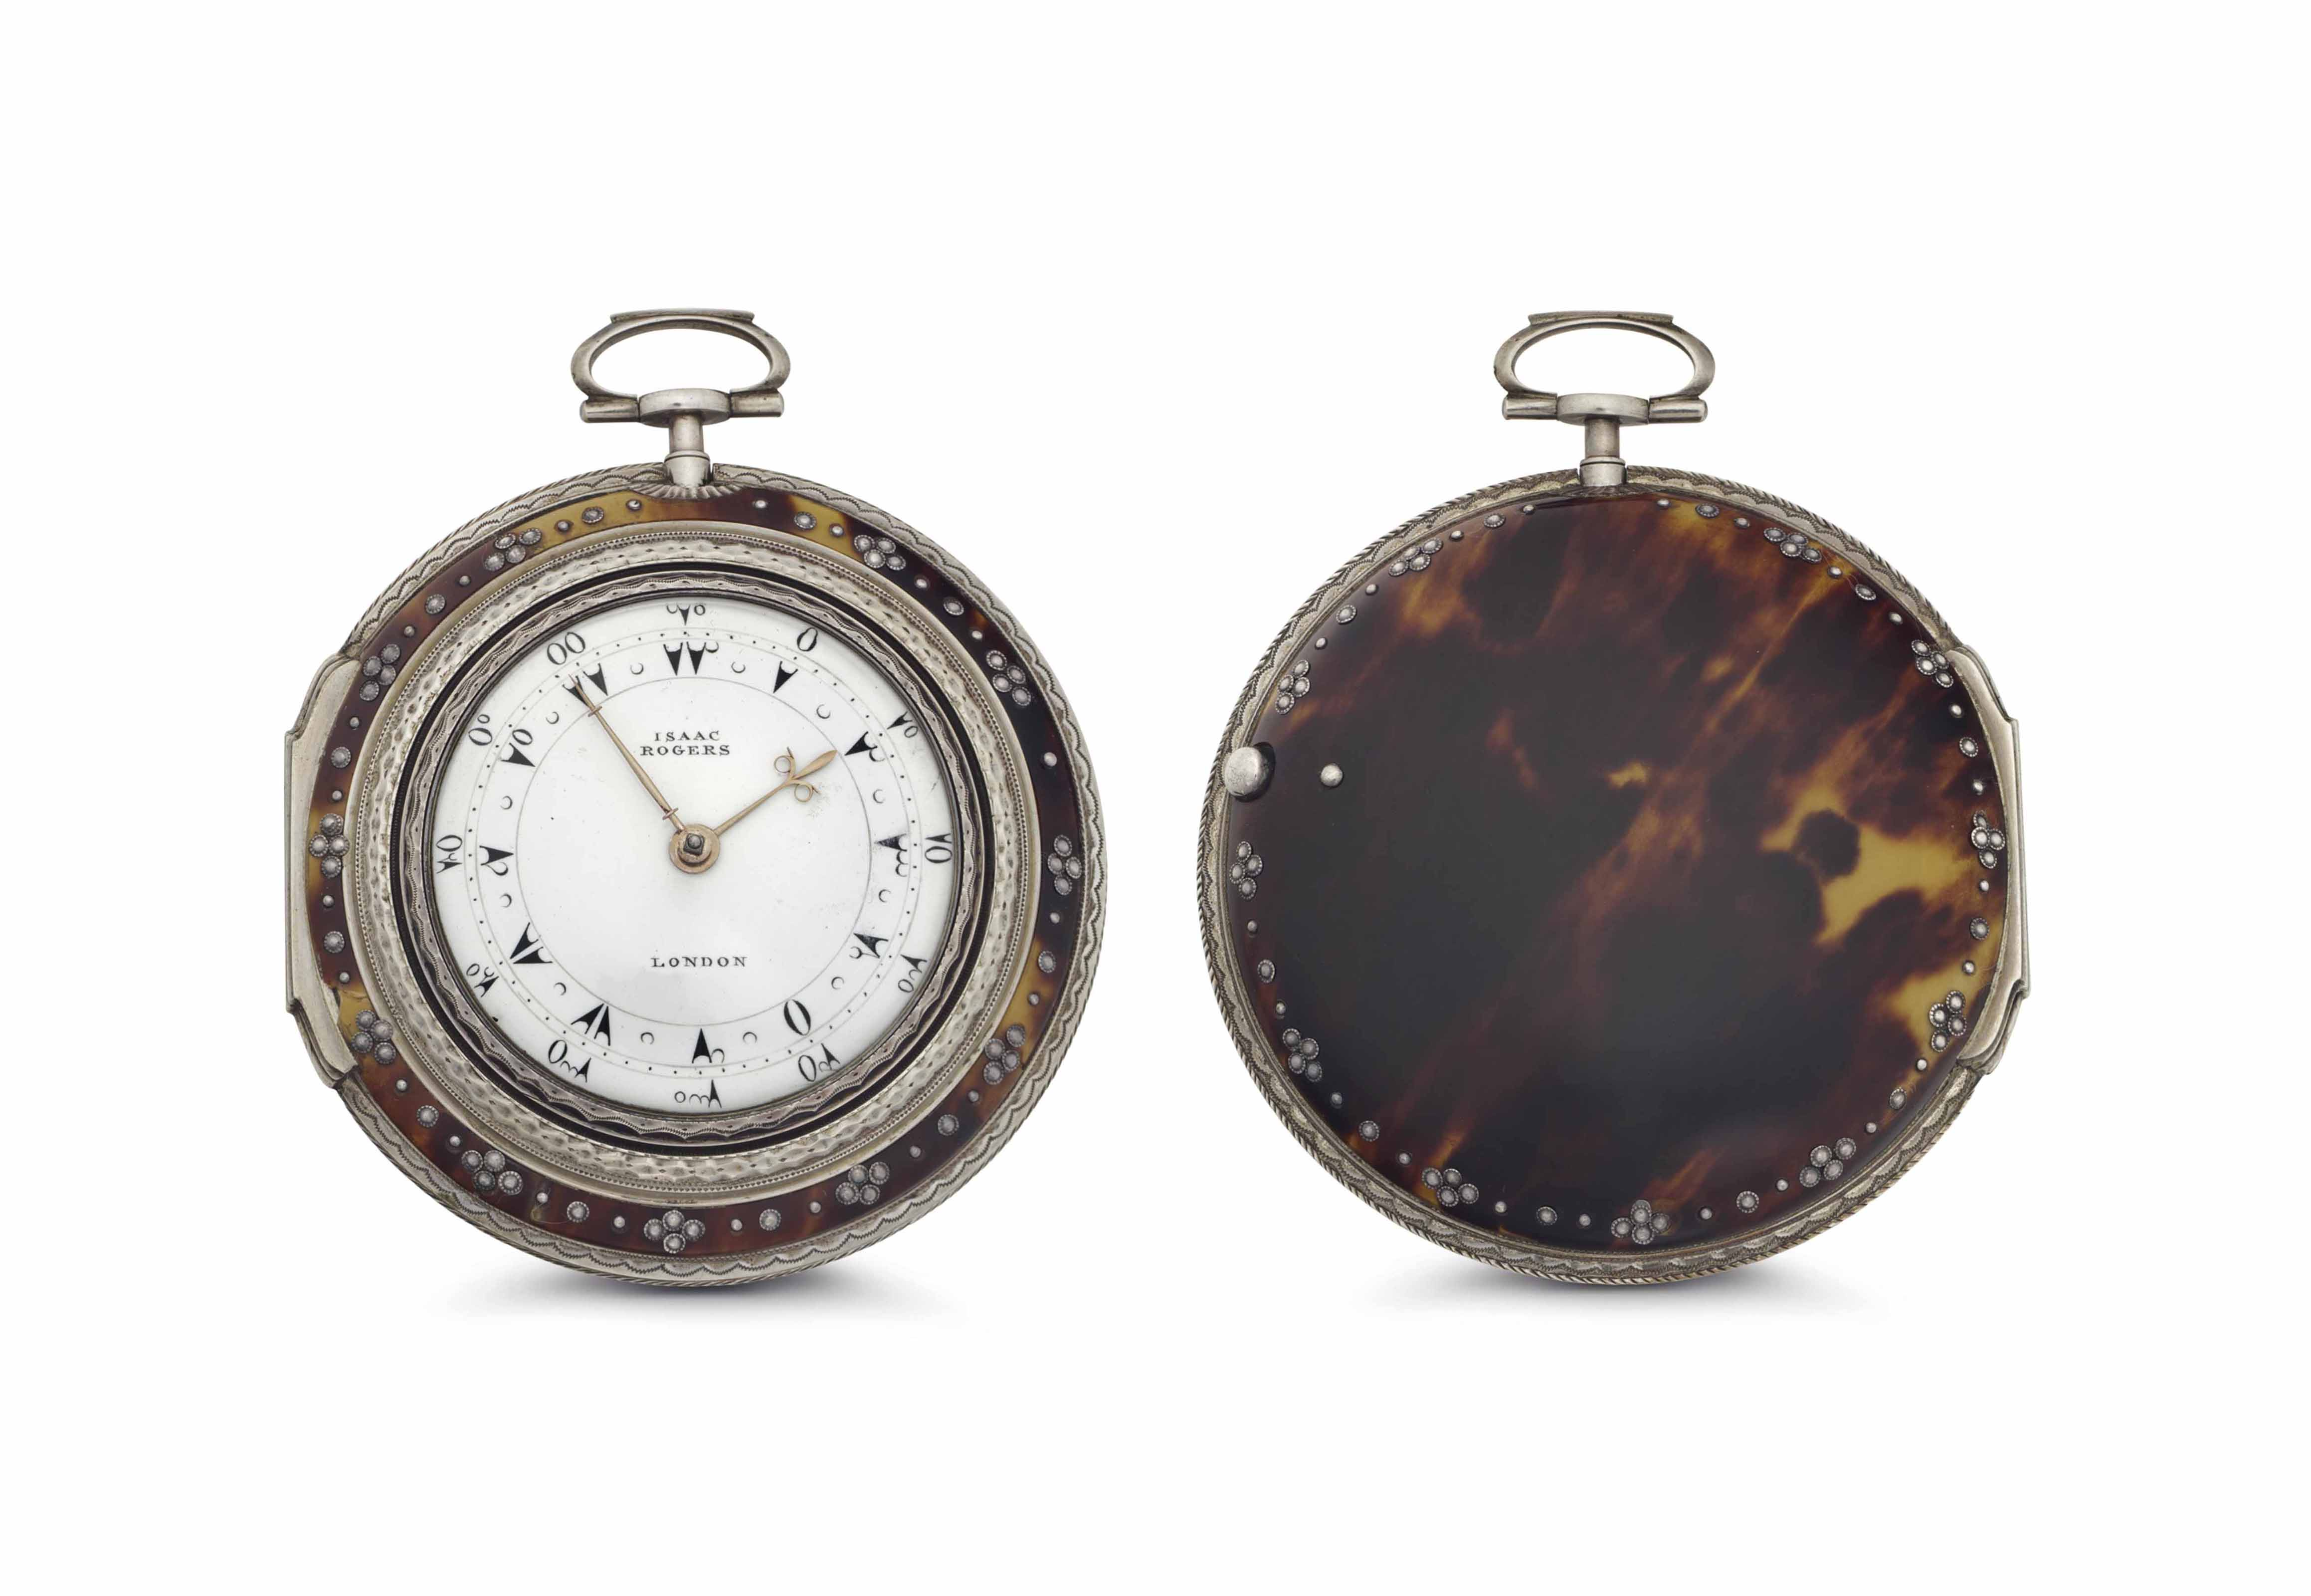 Rogers. A Fine Silver and Tortoiseshell Triple Case Keywound Verge Watch, Made for the Turkish Market